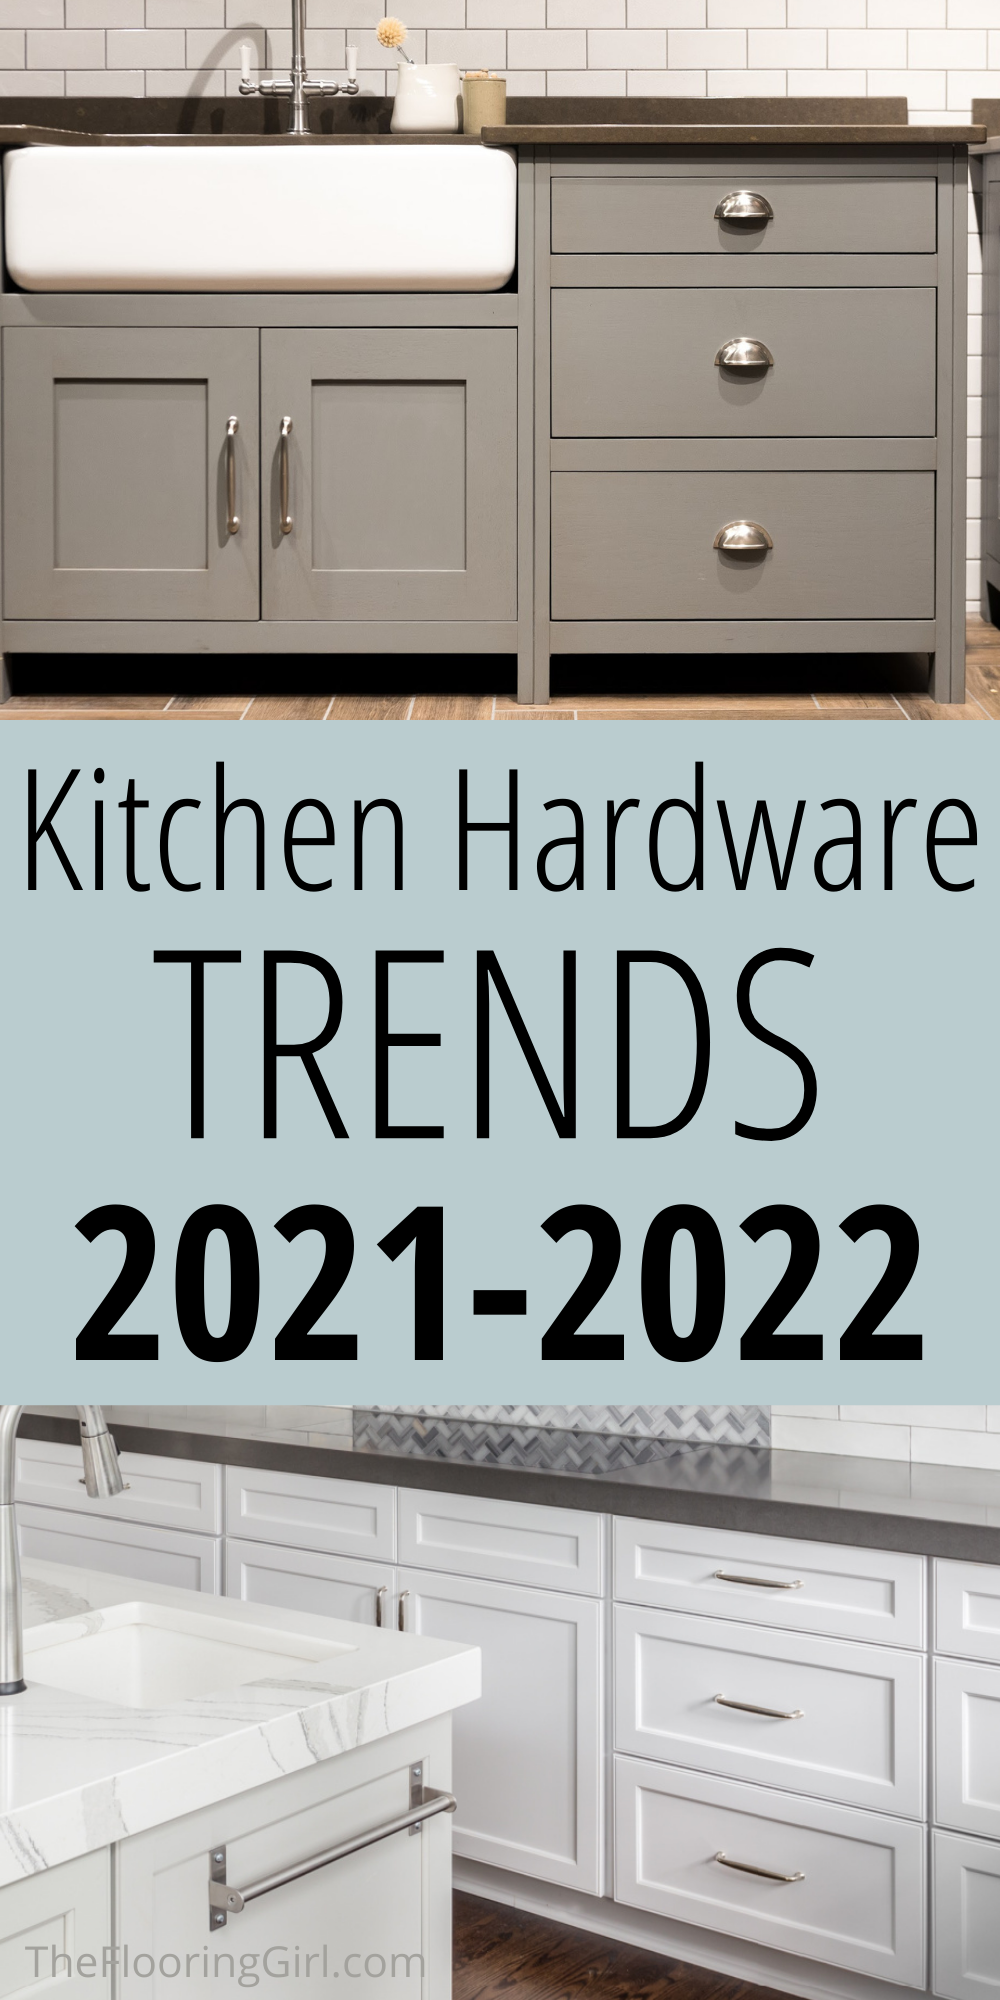 13 Kitchen Hardware Trends for 2021